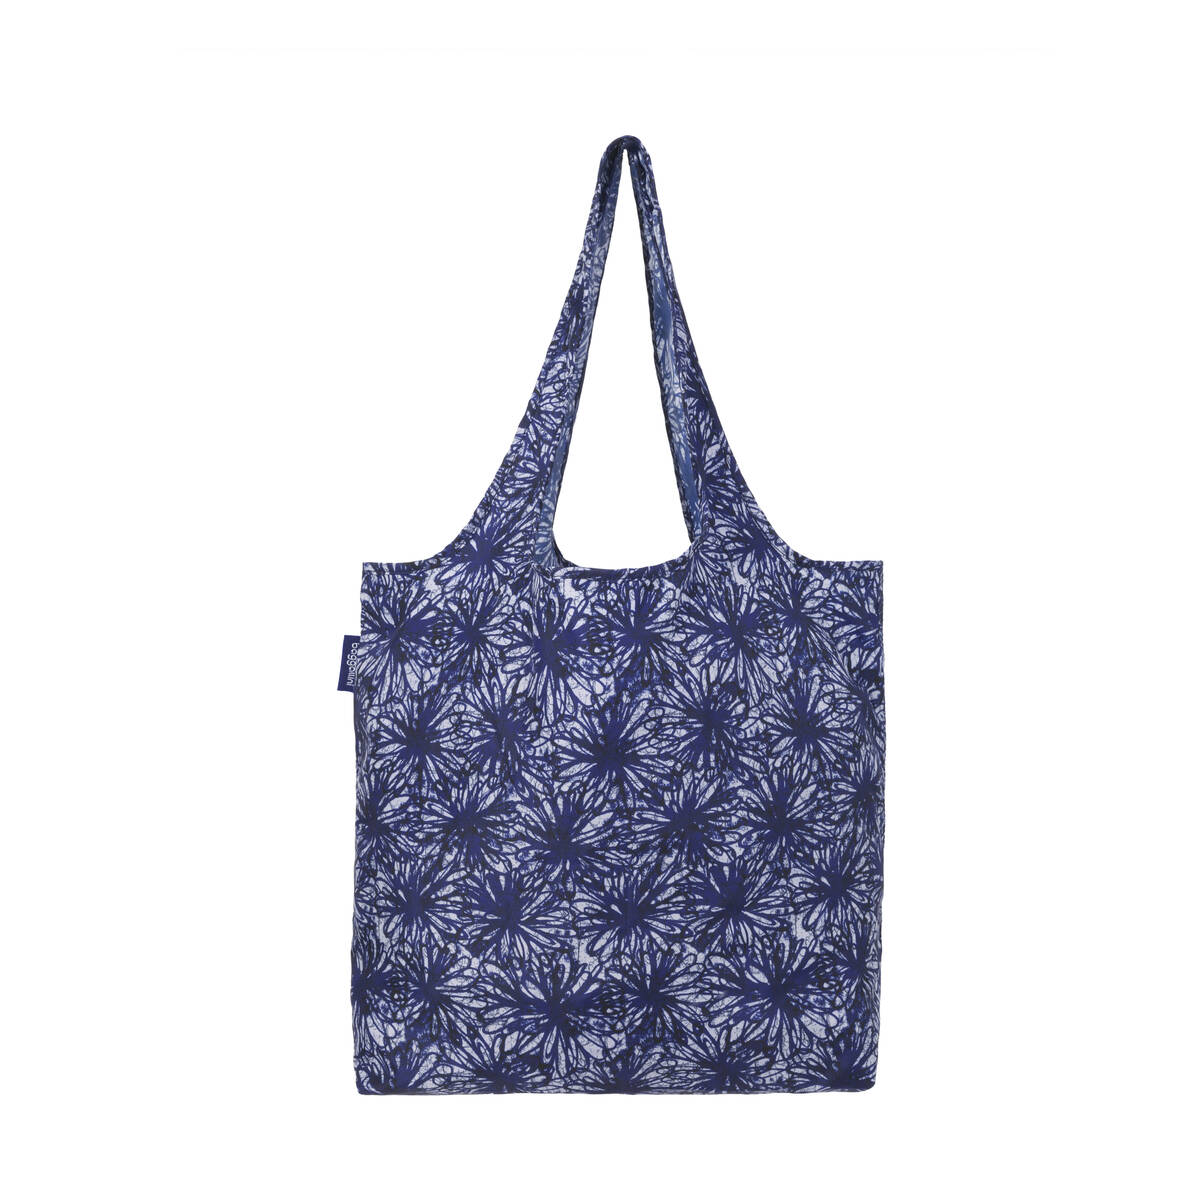 printed reusable shopper tote